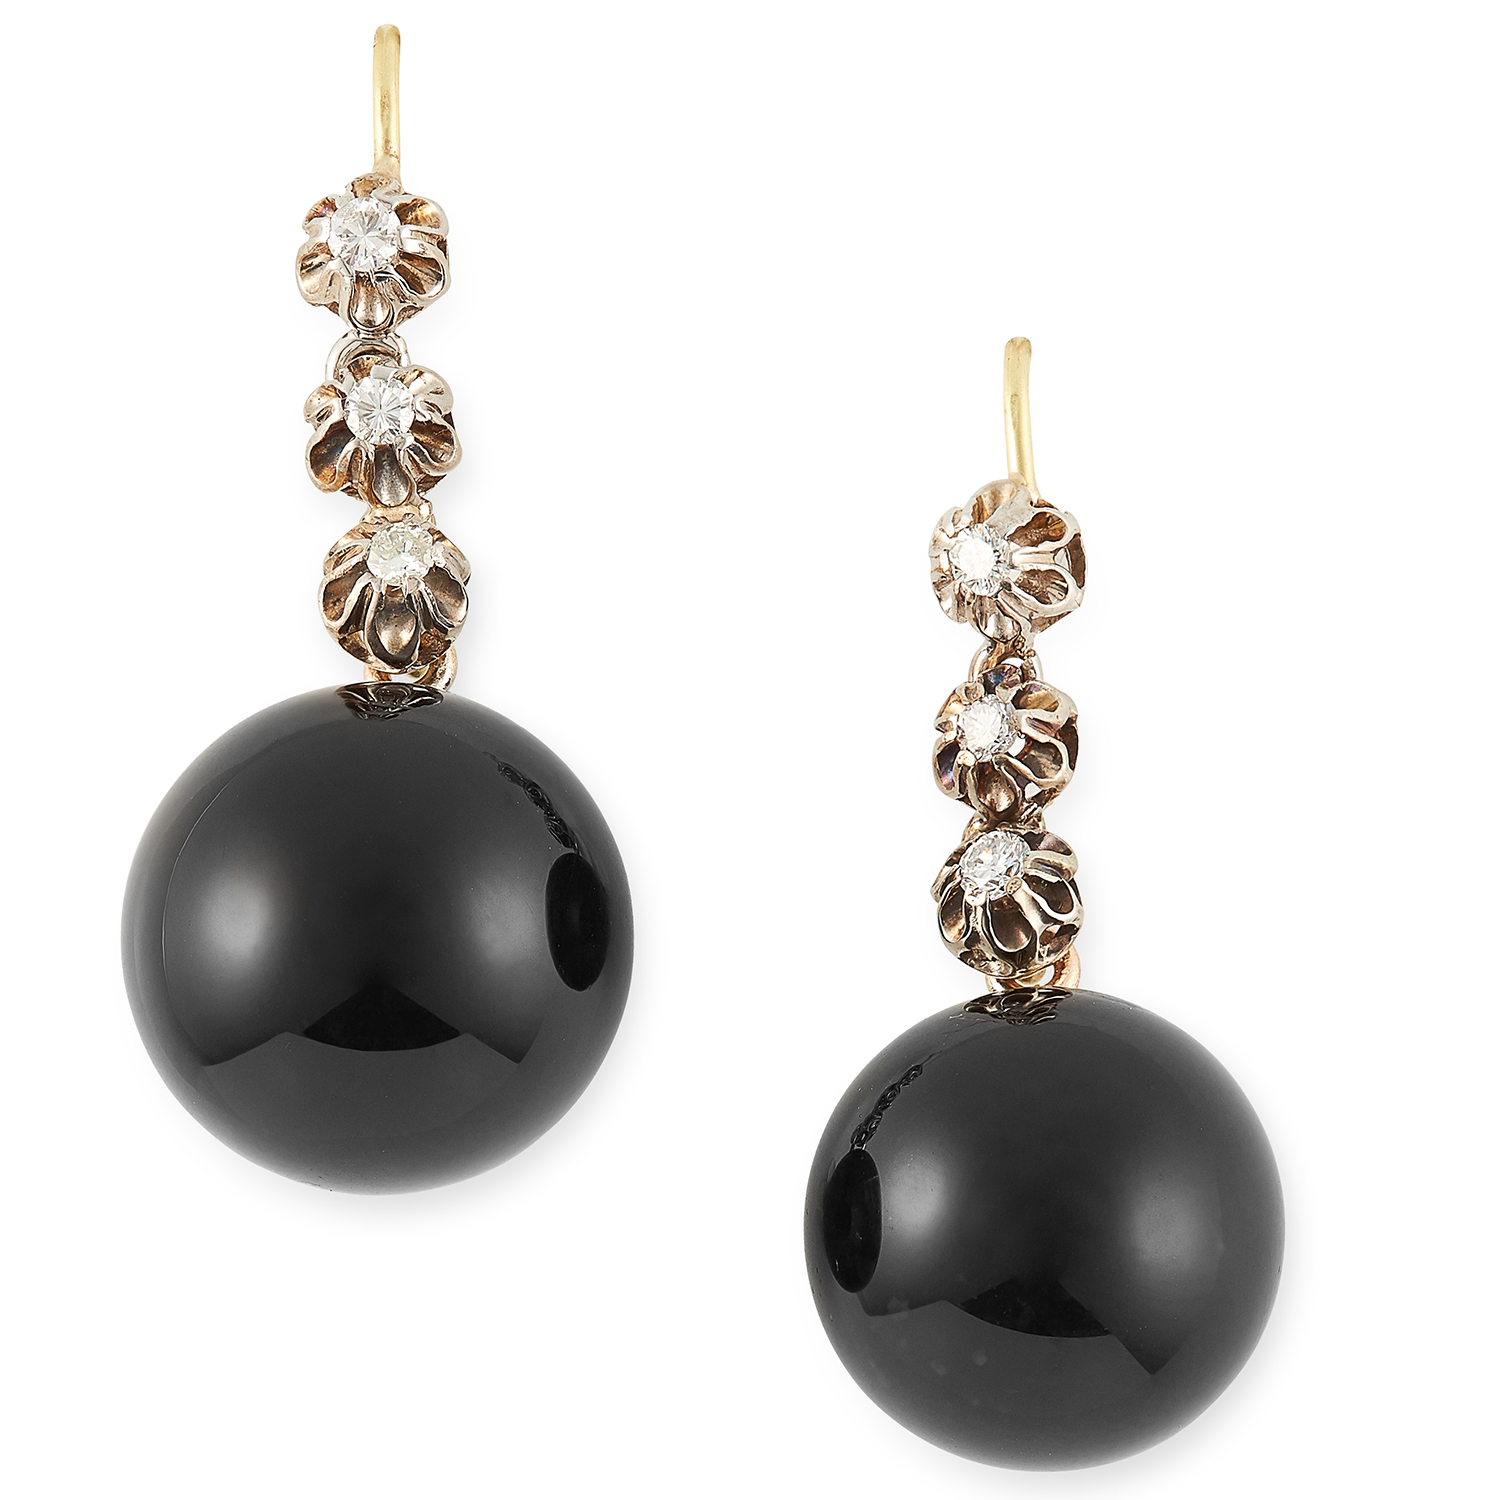 ONYX AND DIAMOND EARRINGS set with polished onyx drops and round cut diamonds, 3.5cm, 10g.